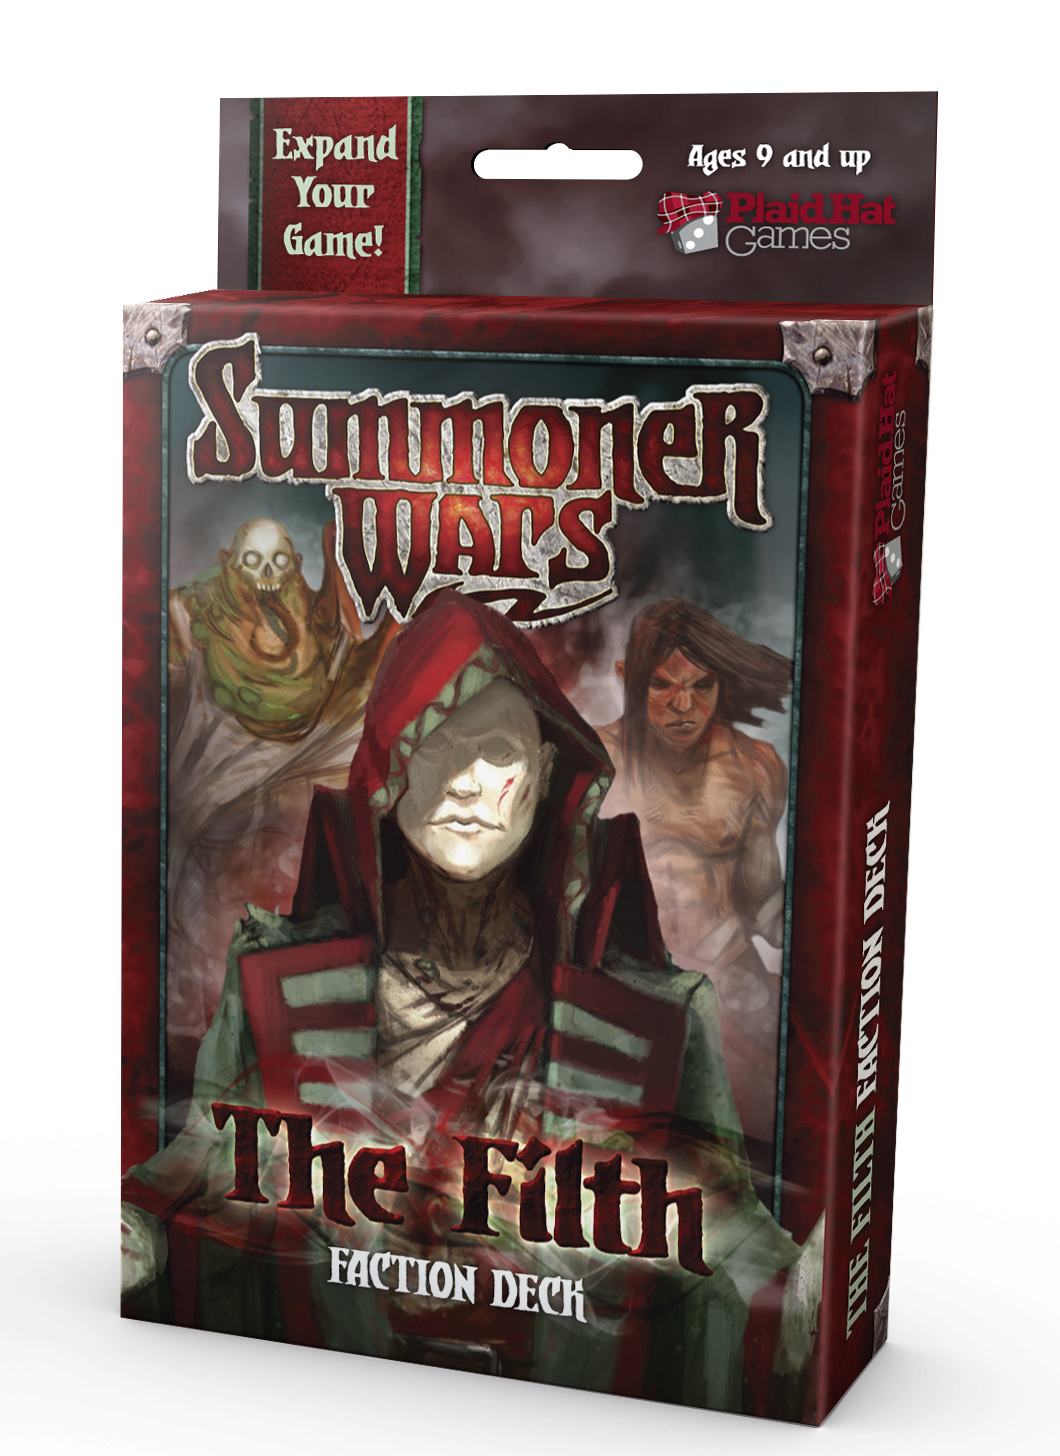 Summoner Wars: The Filth by Plaid Hat Games